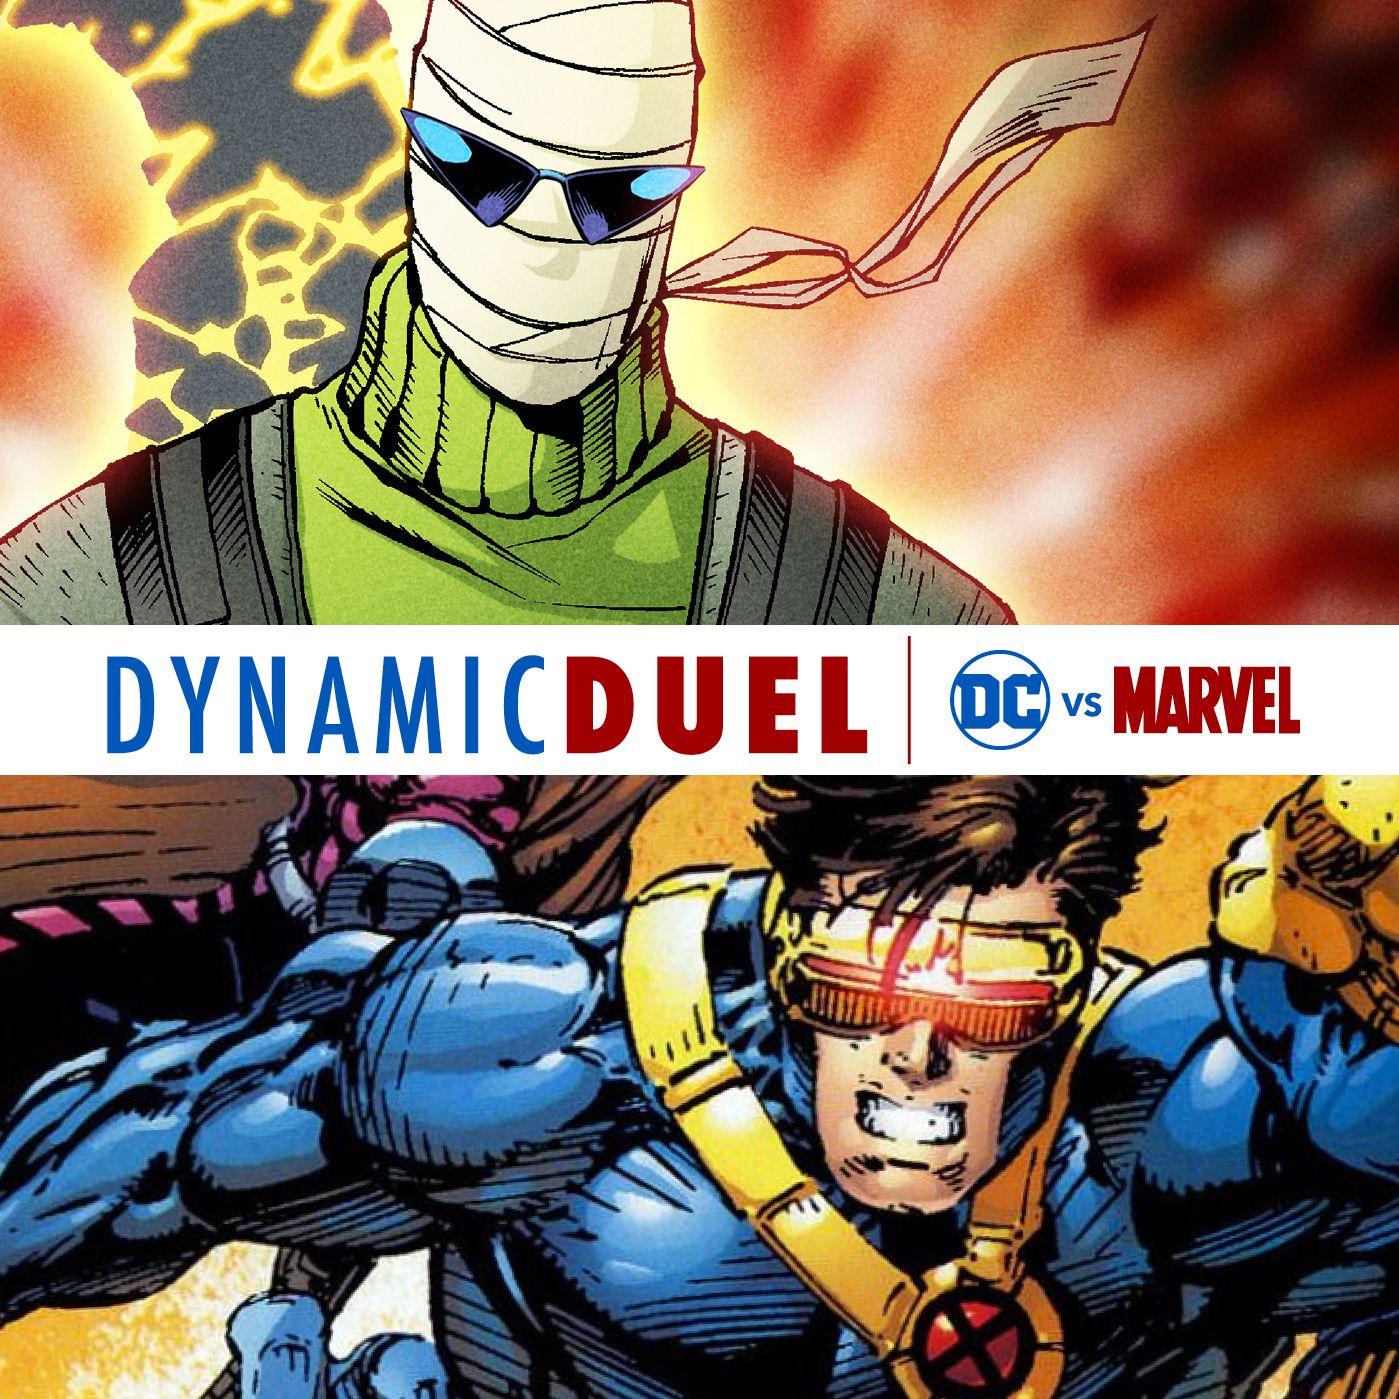 Negative Man vs Cyclops